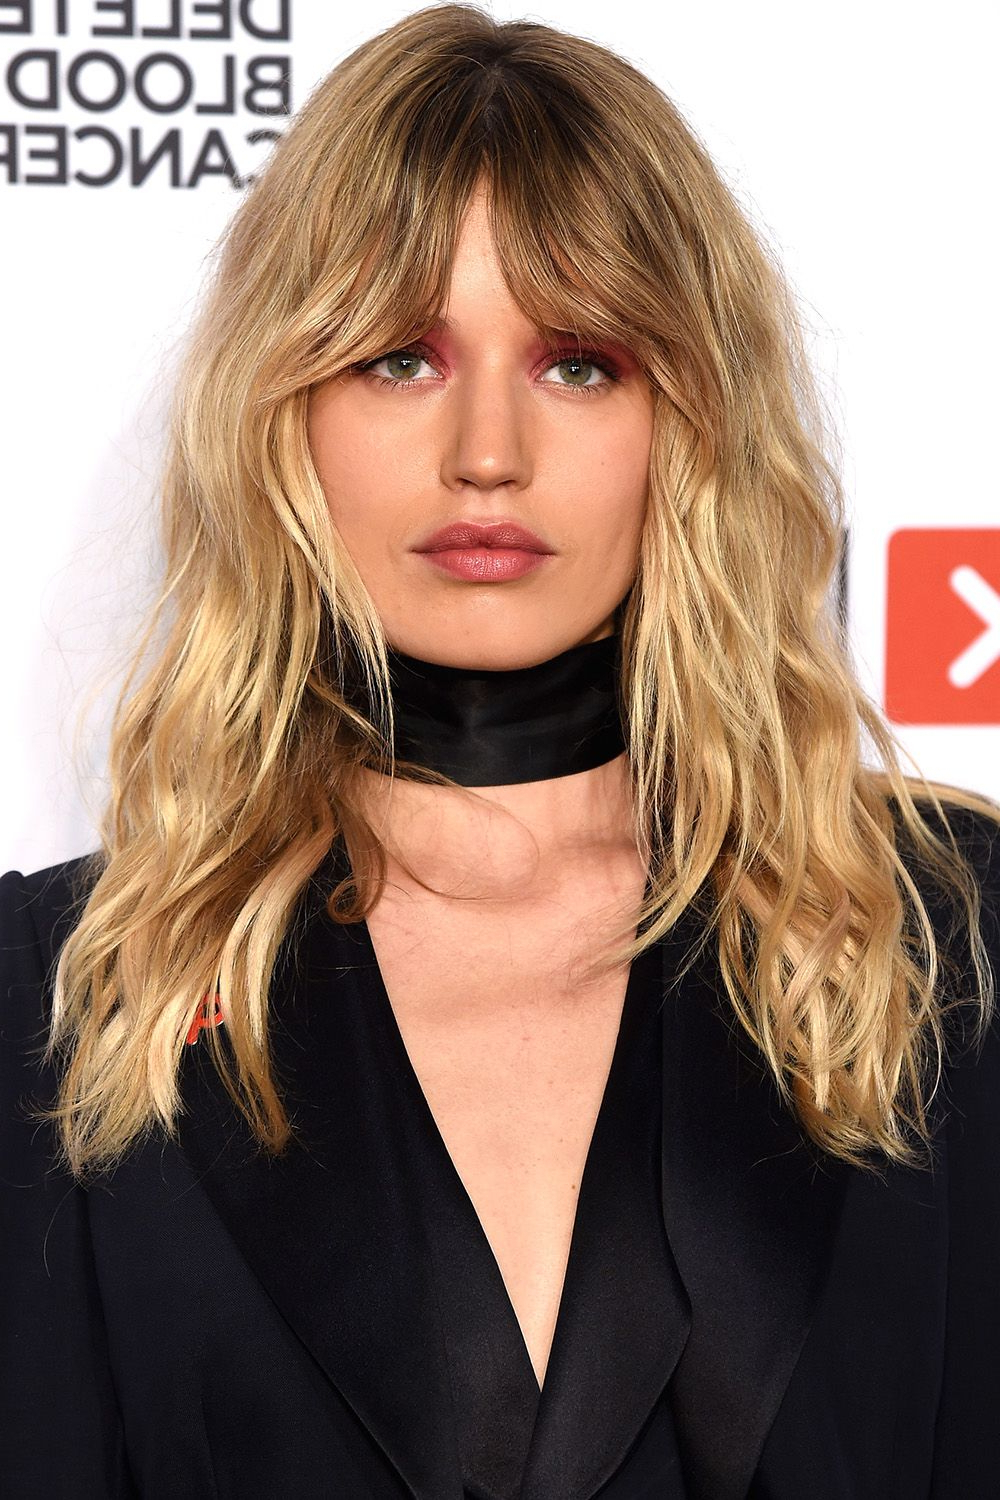 40 Best Medium Hairstyles – Celebrities With Shoulder Length Haircuts In Famous Medium Hairstyles With Long Bangs (Gallery 19 of 20)